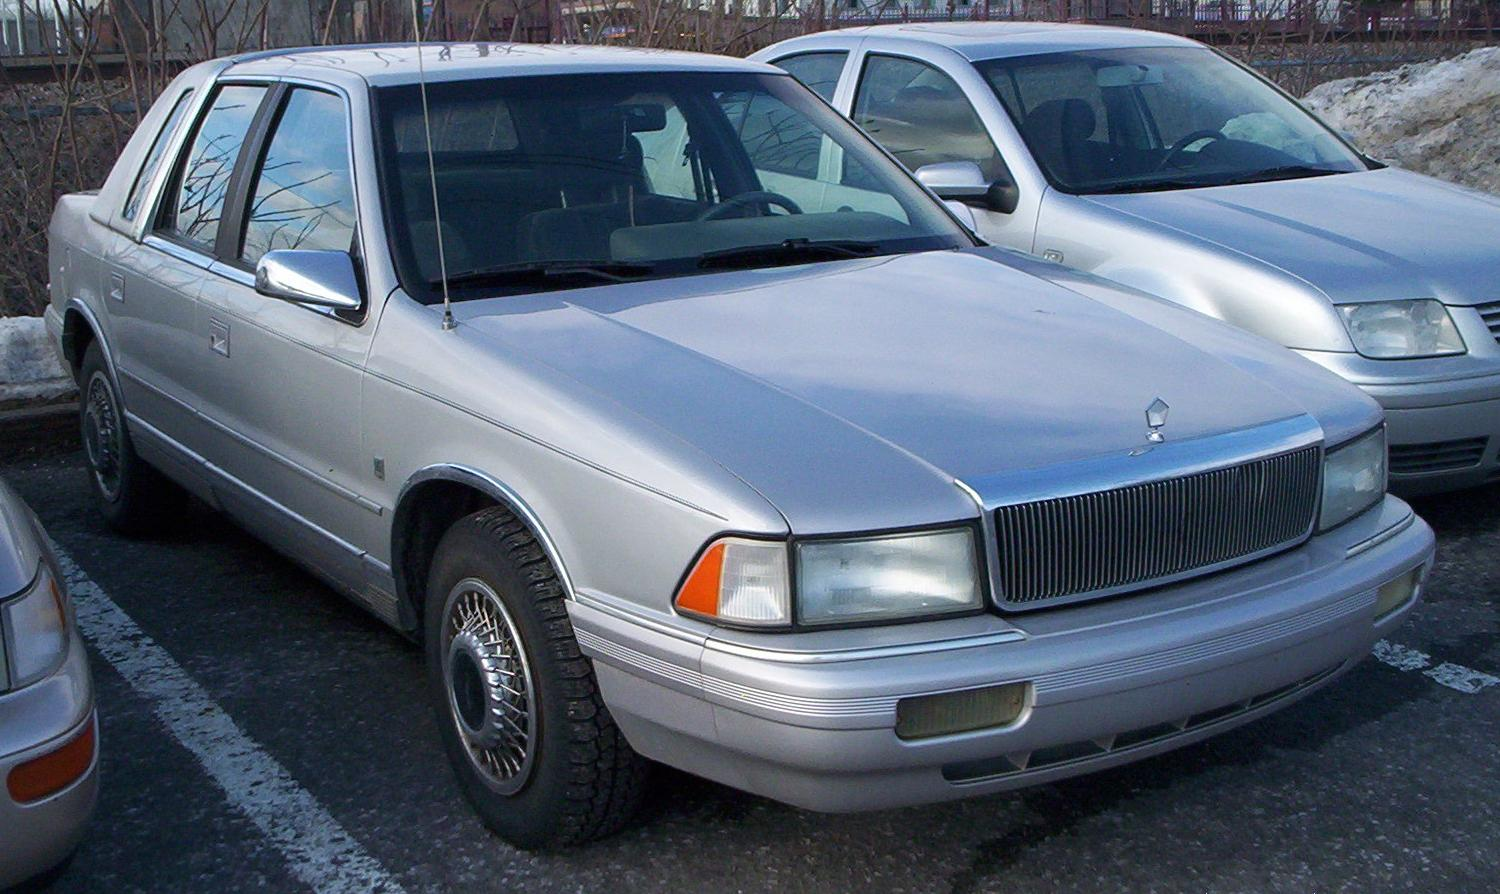 1994 Chrysler Le Baron #8